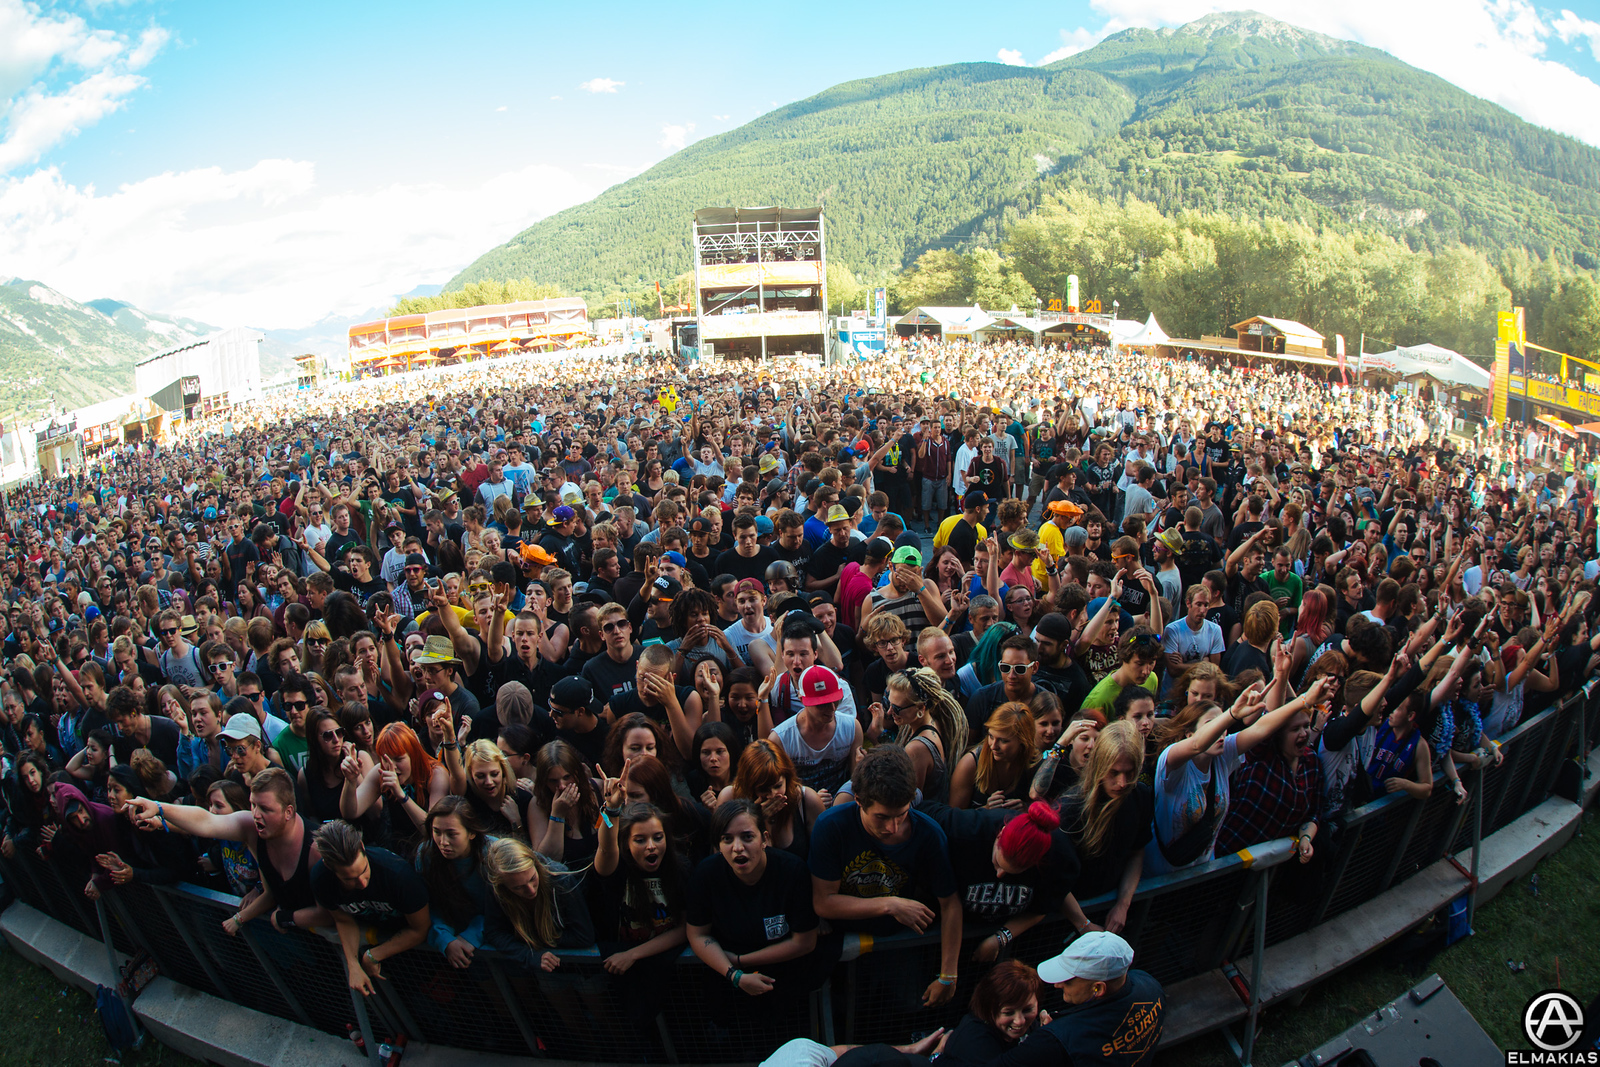 Open Air Gampel Festival in Switzerland